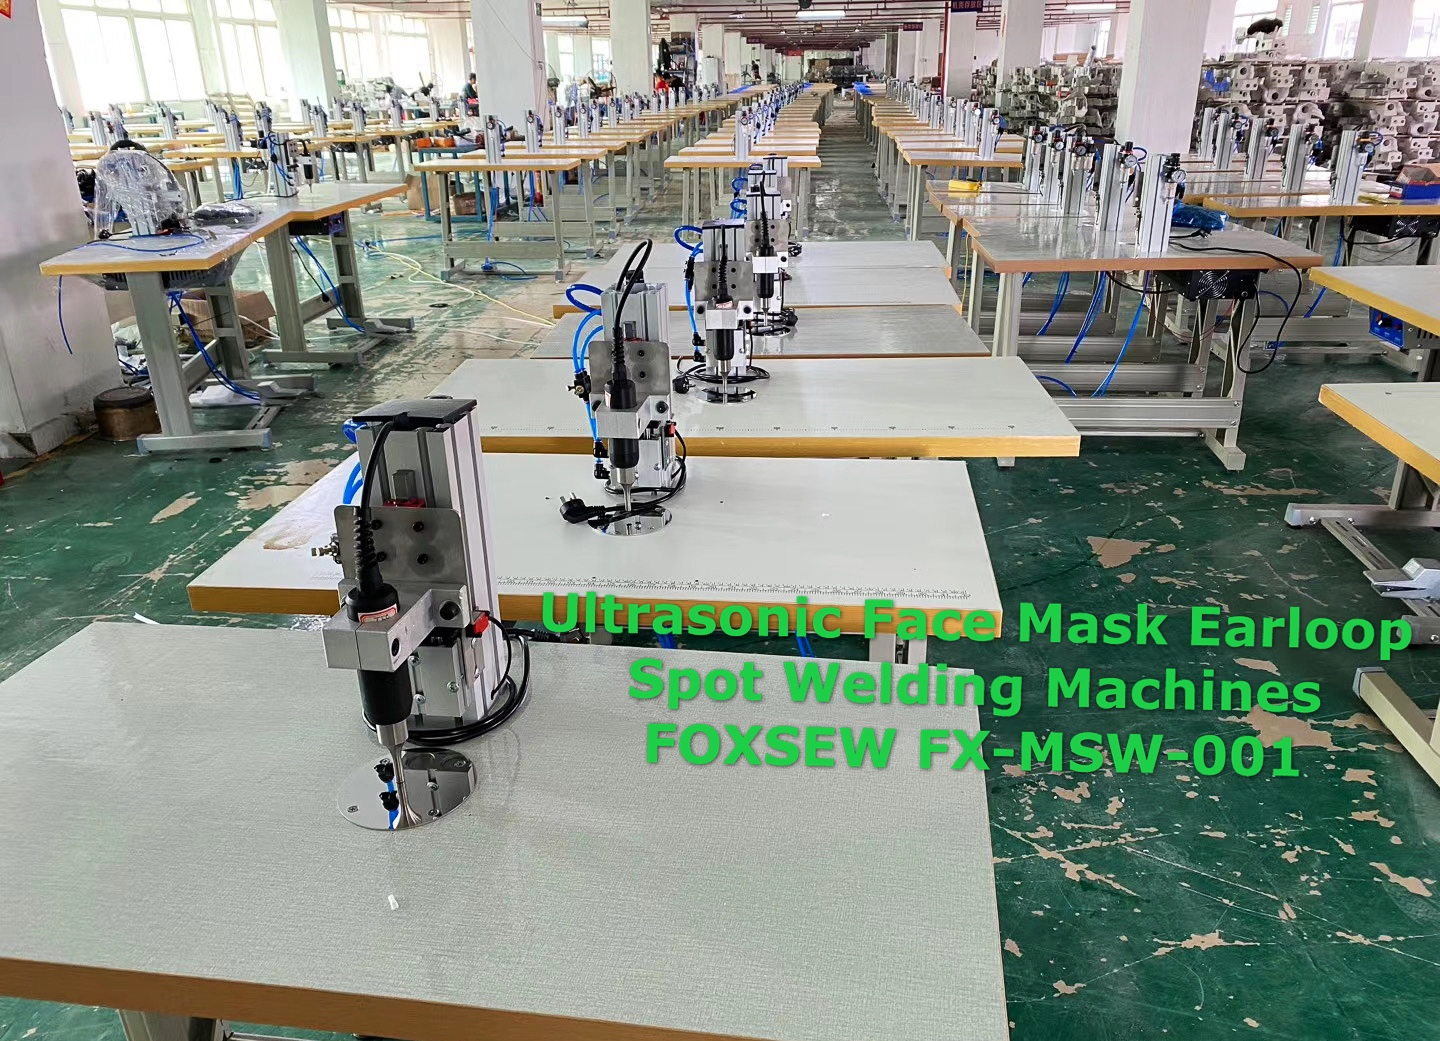 Ultrasonic Face Mask Earloop Spot Welding Machines FOXSEW FX-MSW-003 -1 (1)